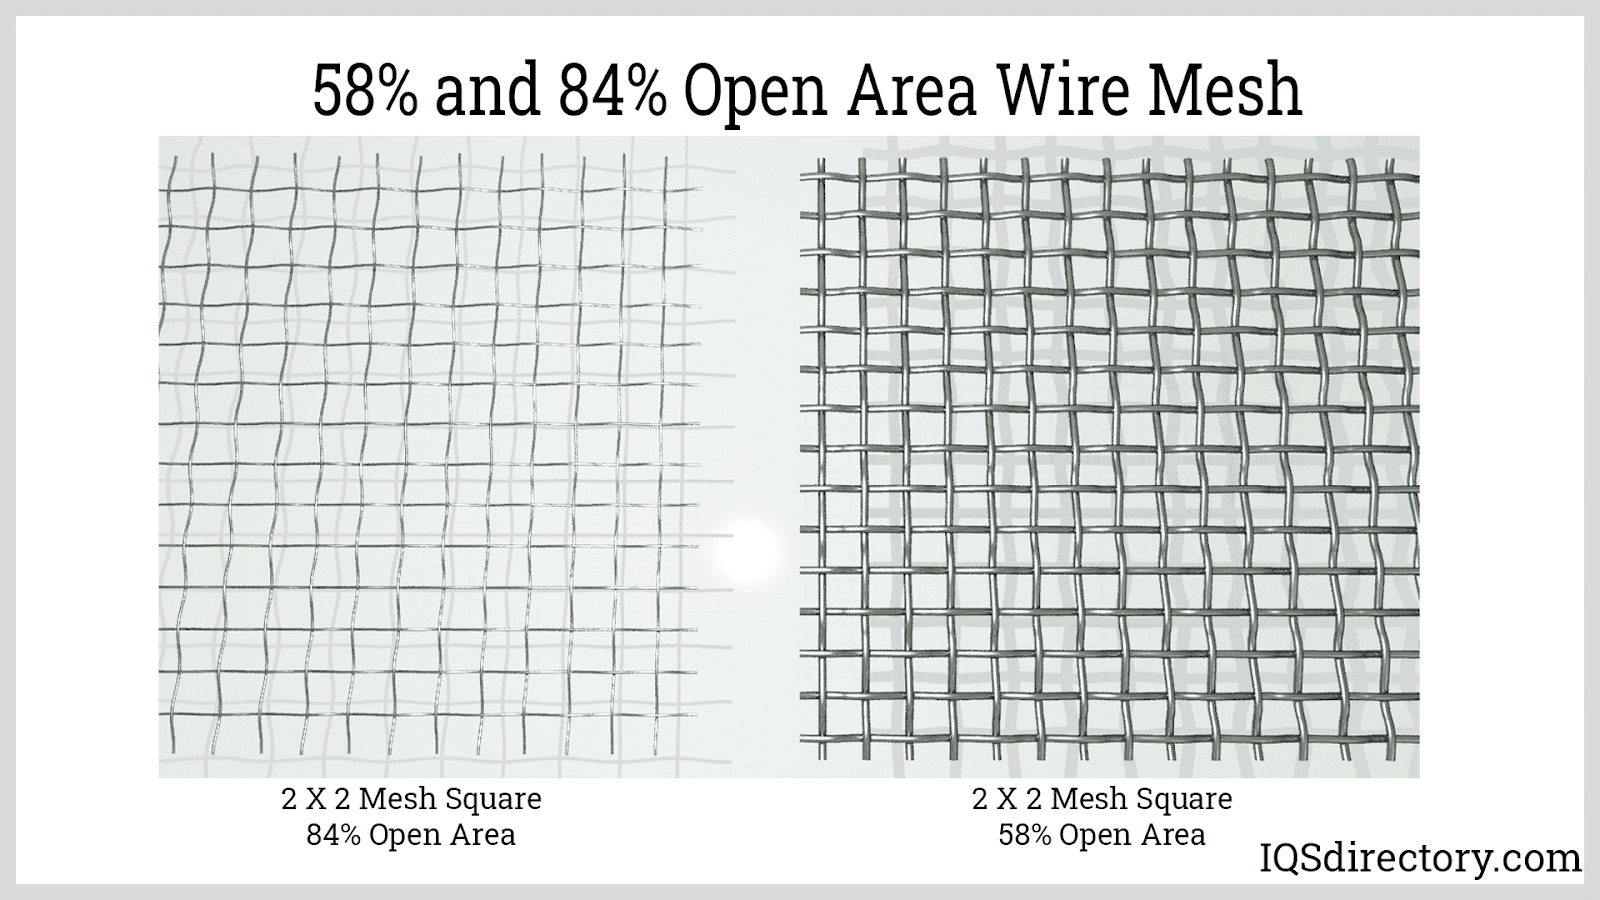 58% and 84% Open Area Wire Mesh